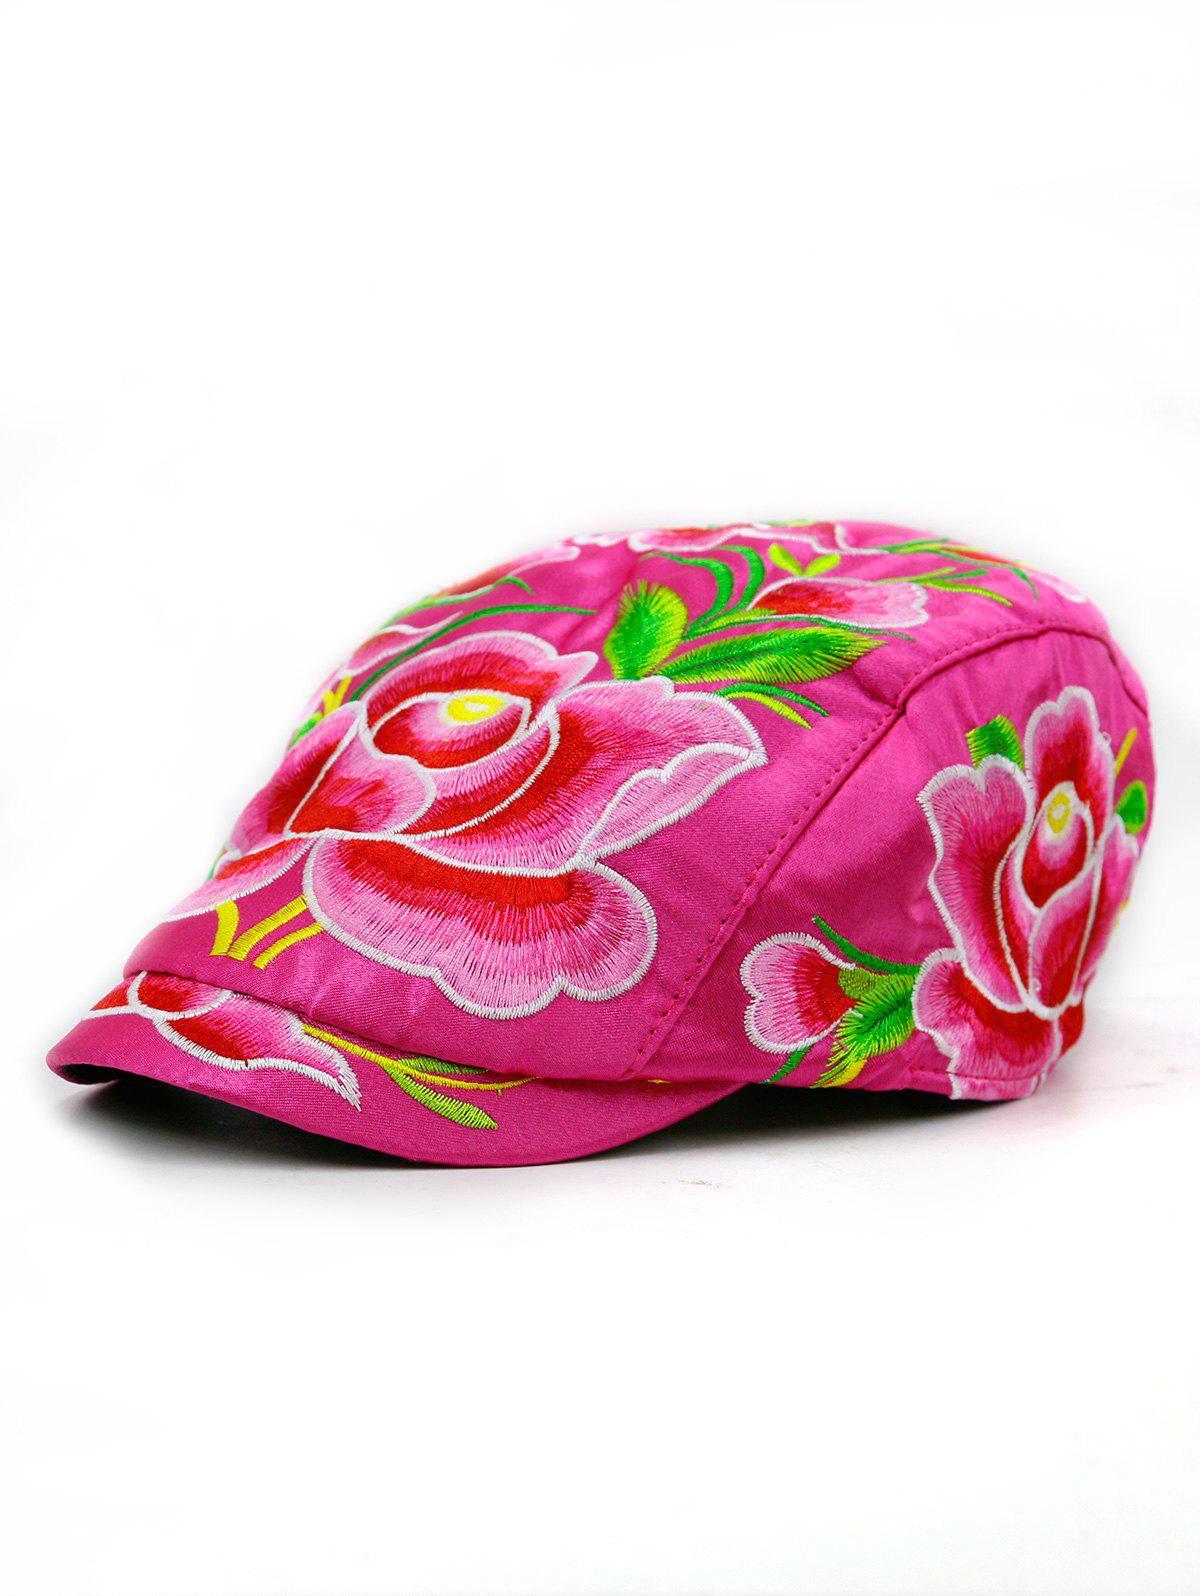 Lotus Flower Embroidered Ivy Hat - NEON PINK